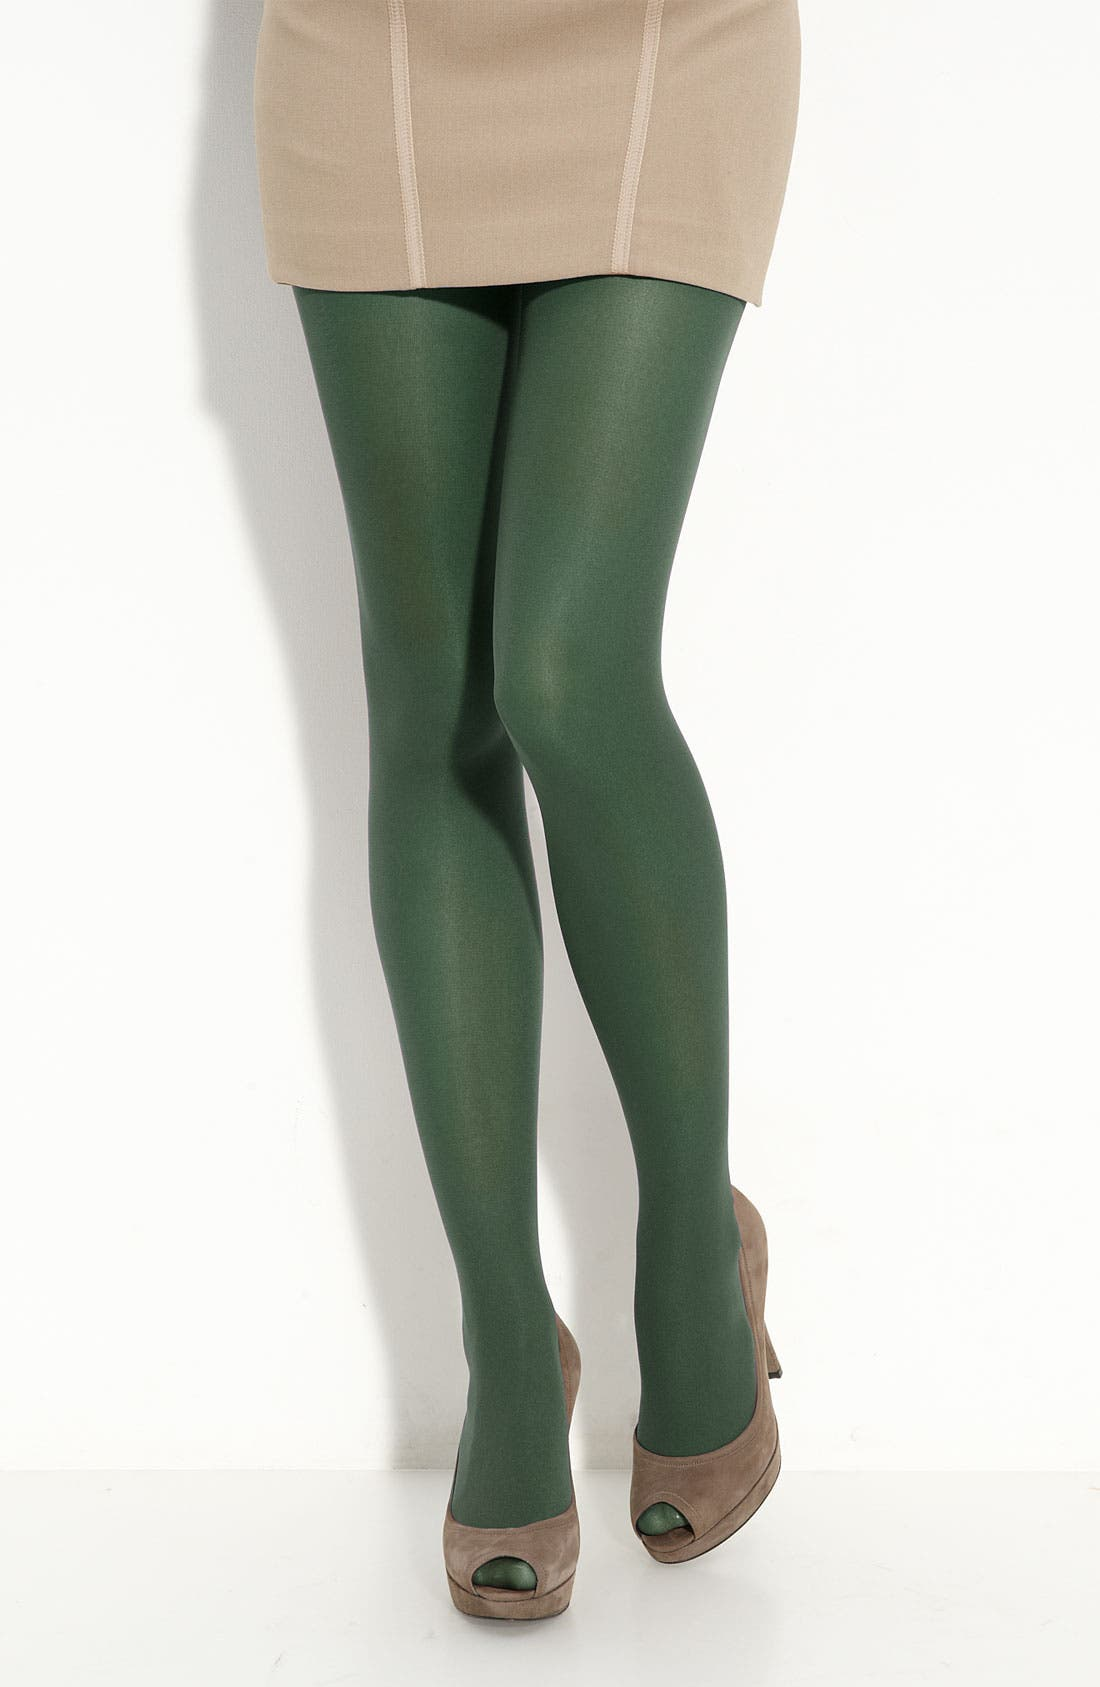 Alternate Image 1 Selected - Nordstrom Opaque Control Top Tights